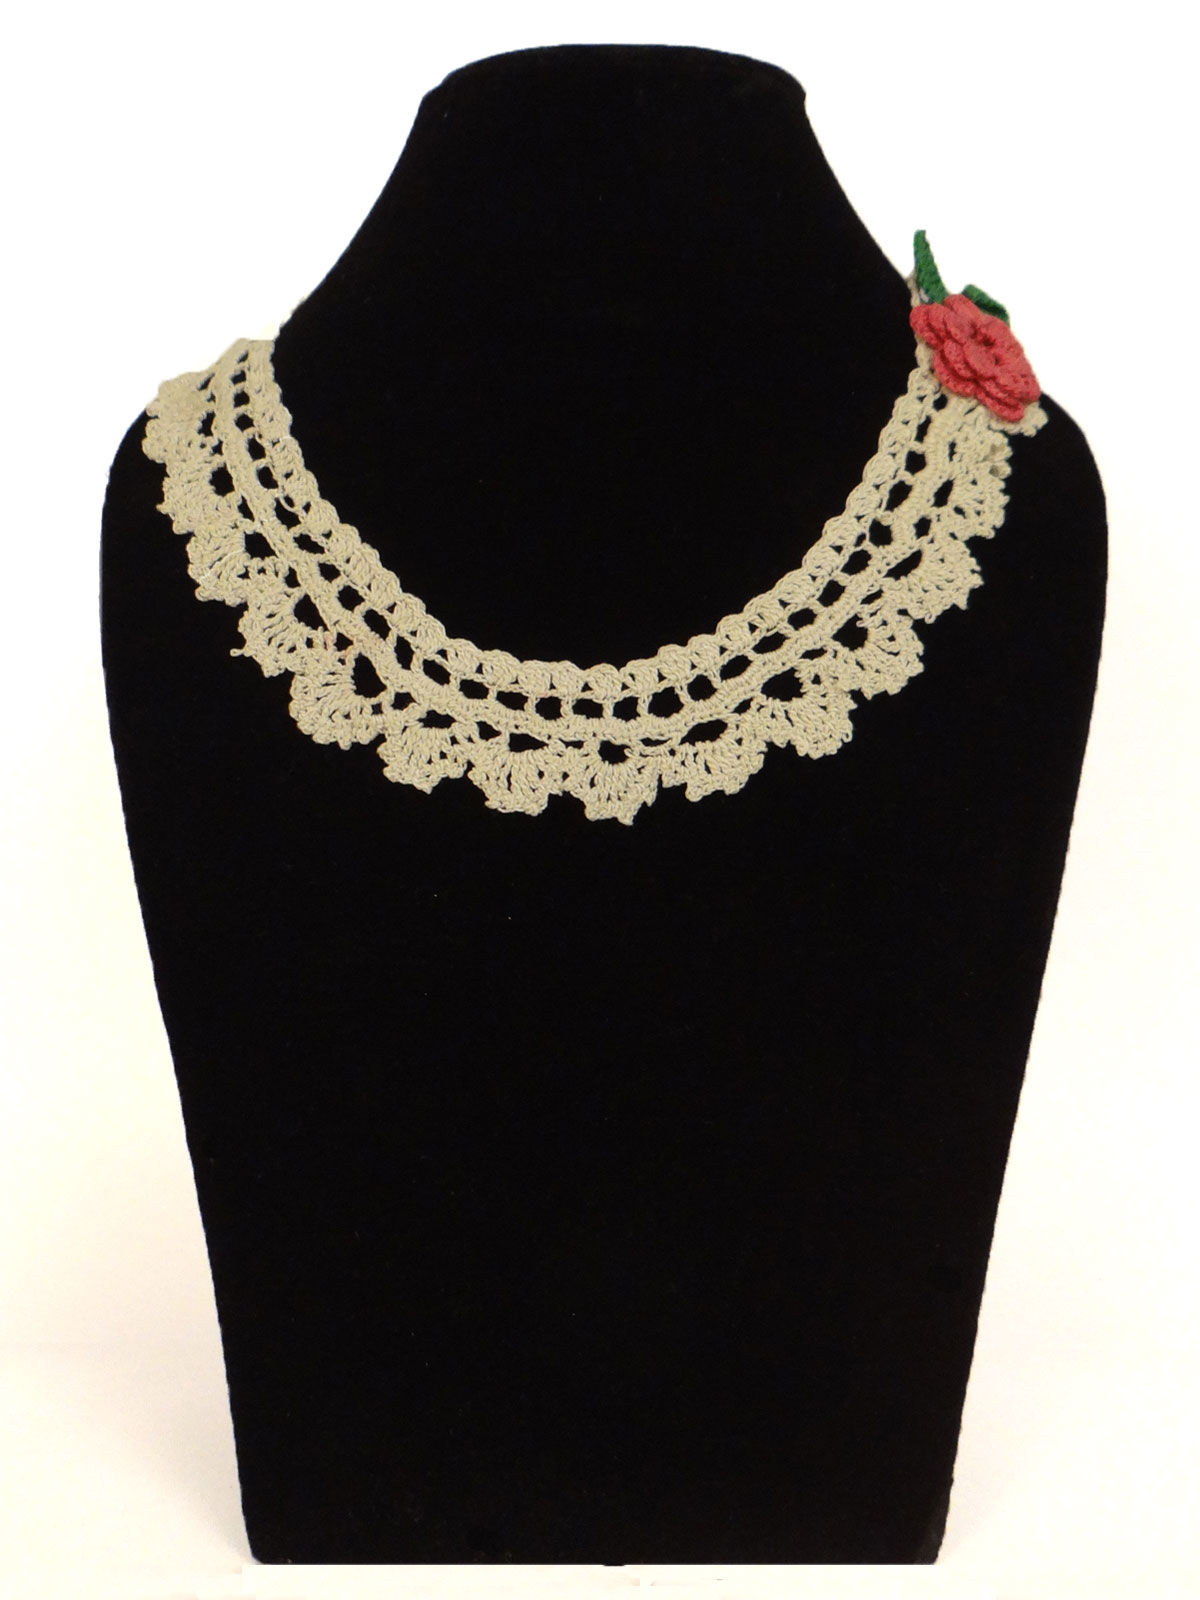 White  crochet fabric necklace with flower shaped design and bracelet